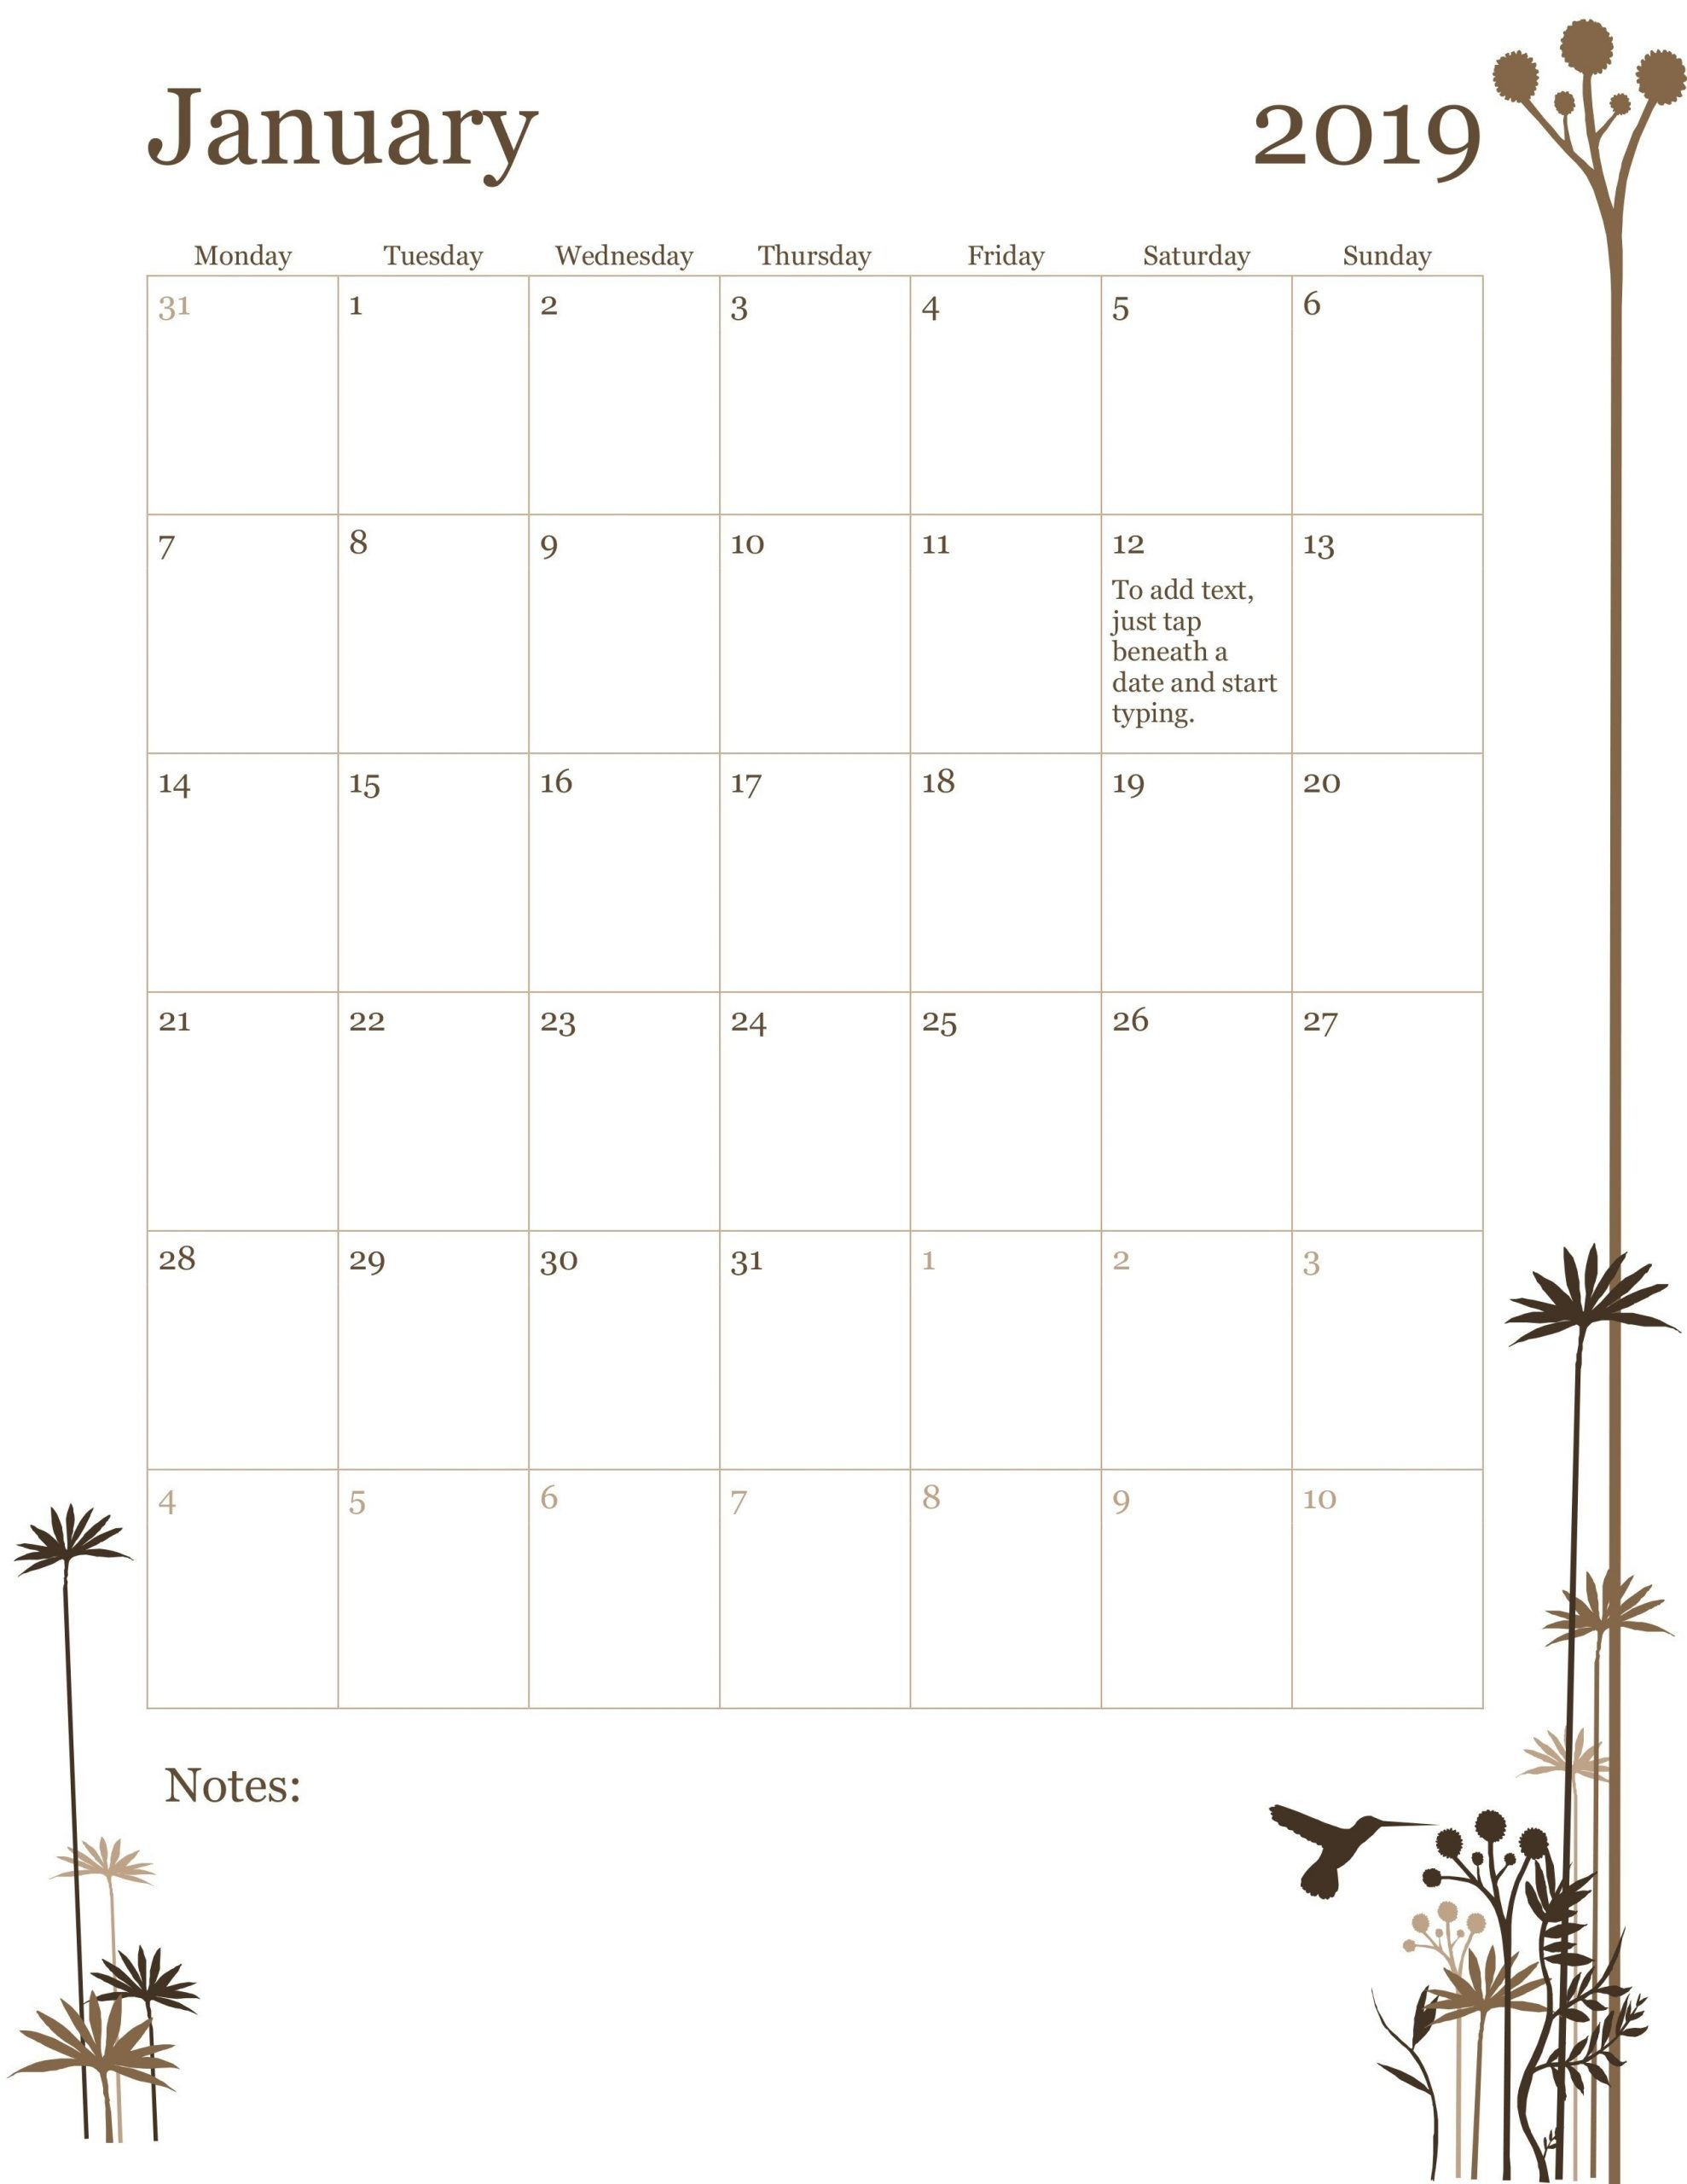 Monday Friday Monthly Calendar Template | Calendar Mon Fri Calendar Template